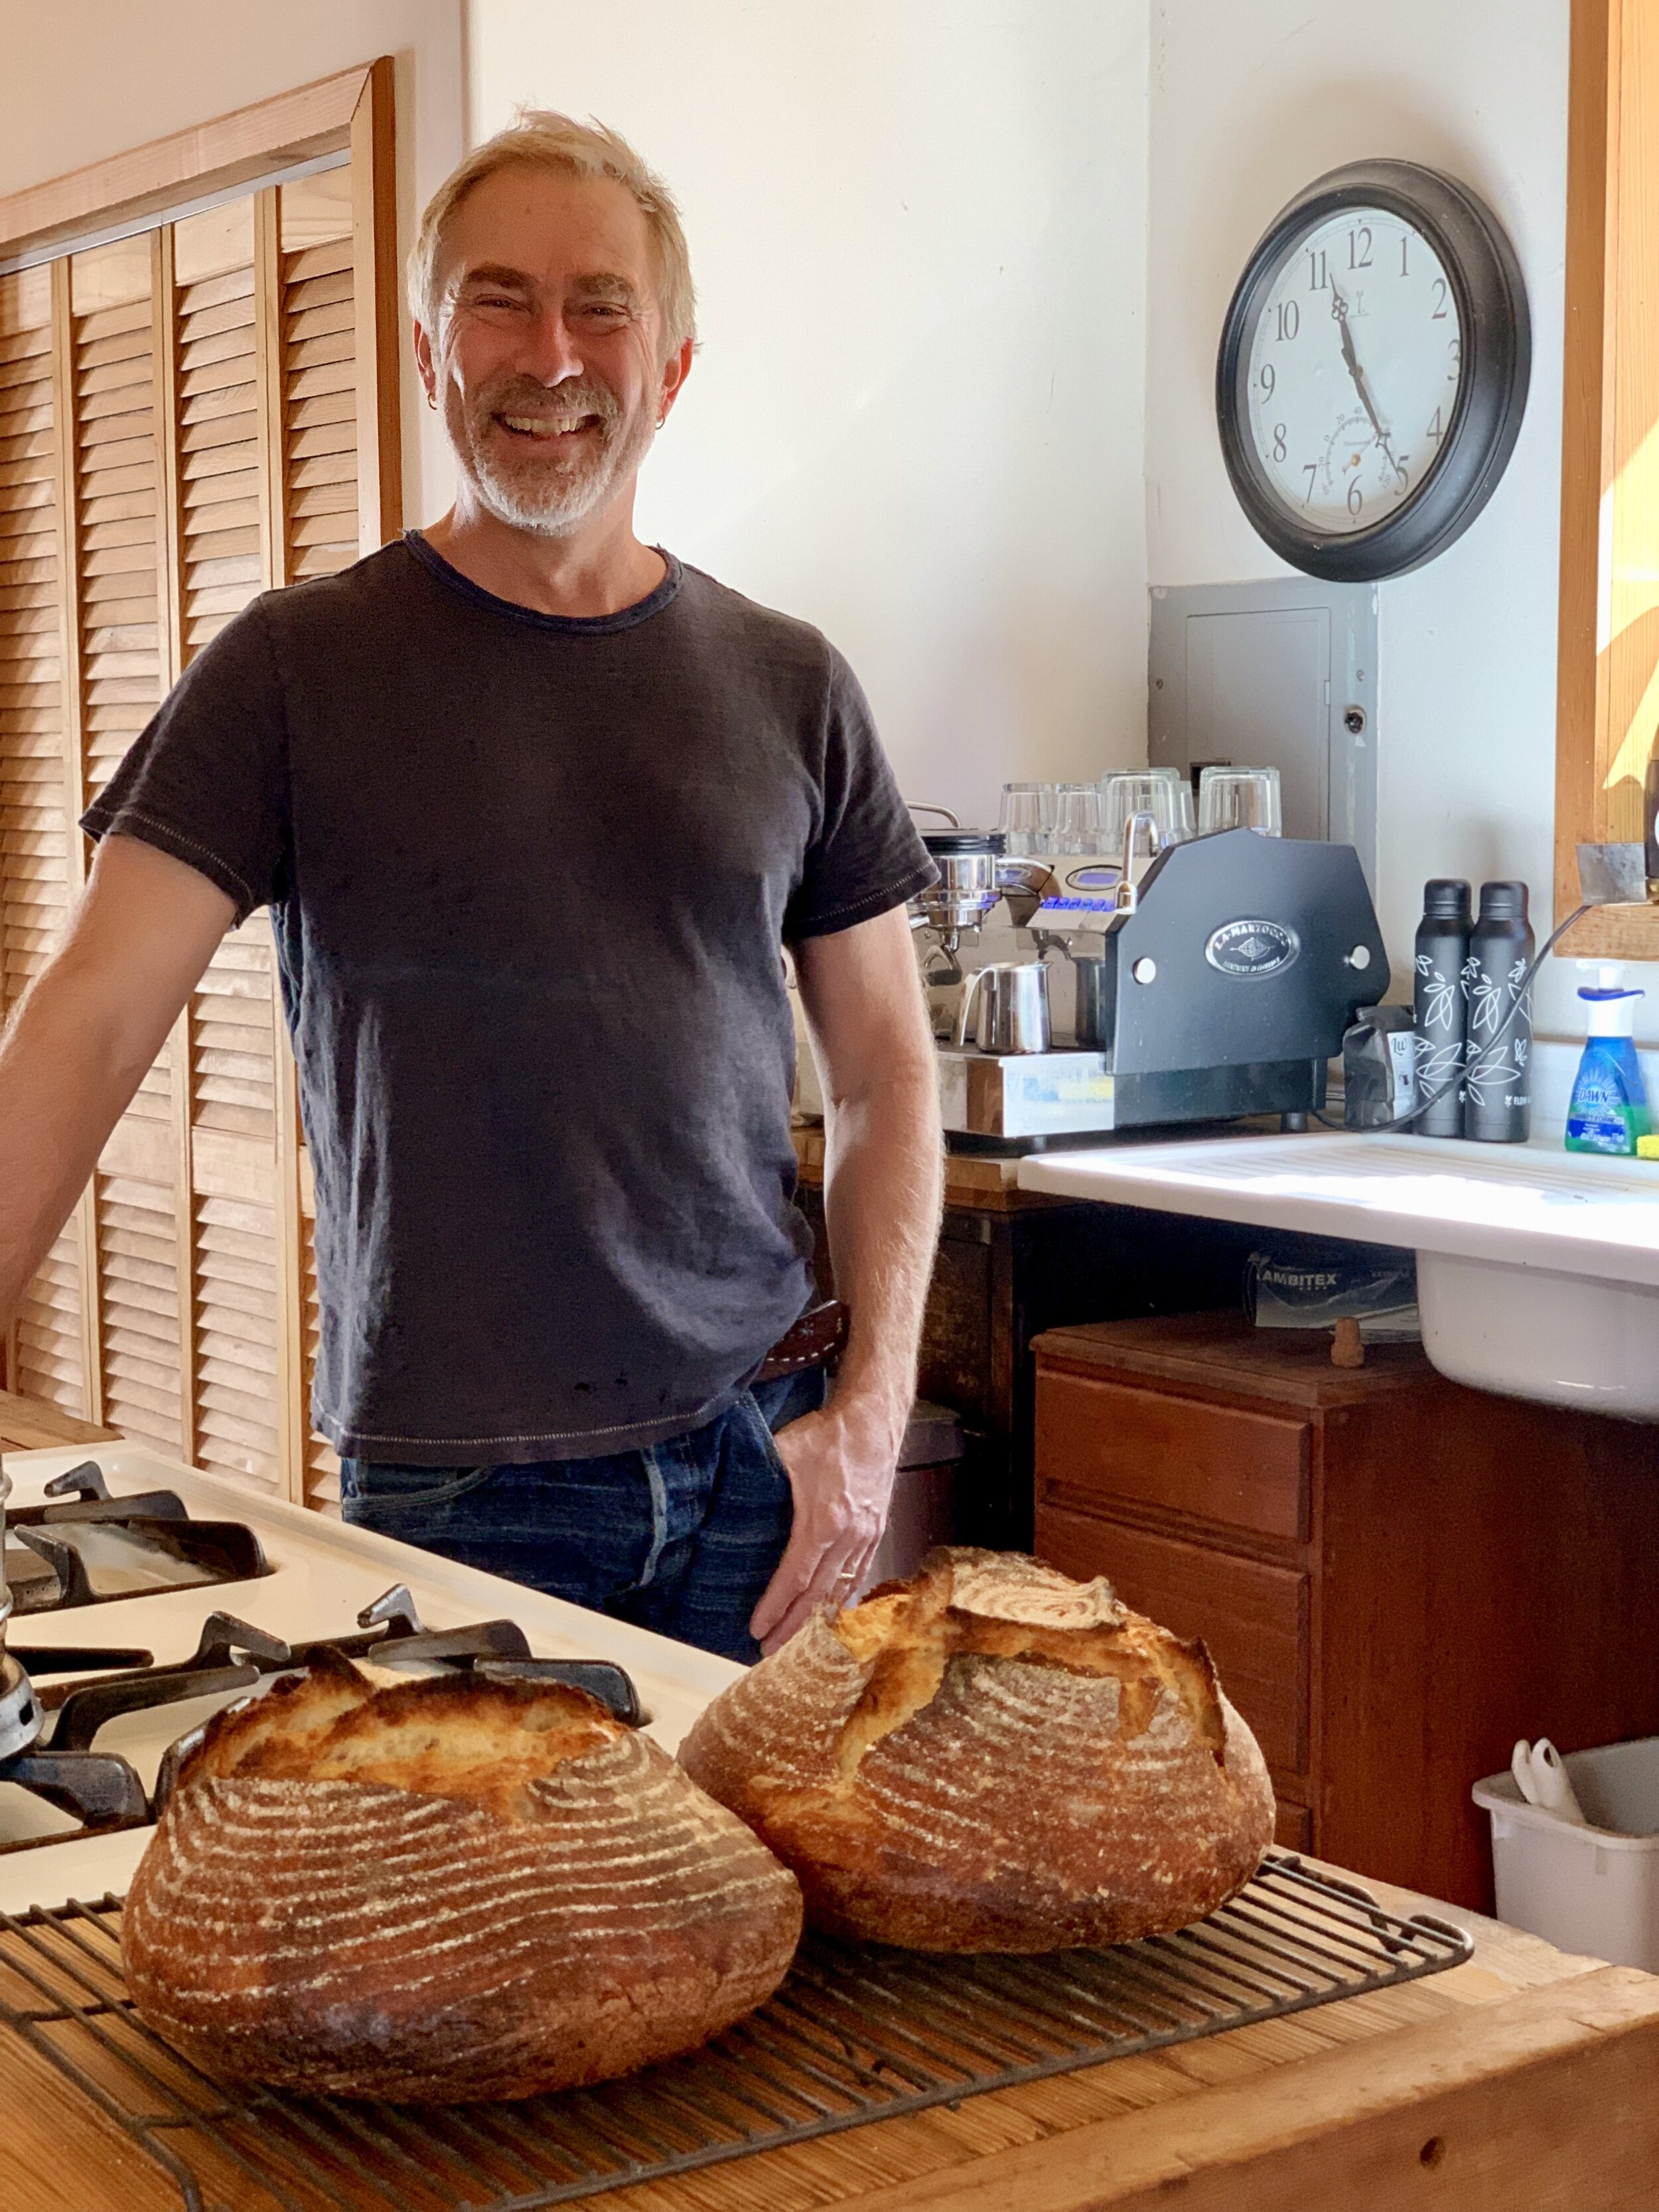 Thank you for the hospitality, John!  What a delicious treat to break bread with you. Your signature sourdough fresh out of the oven was outta this world!   Connect on Instagram: @kingsviewfarms